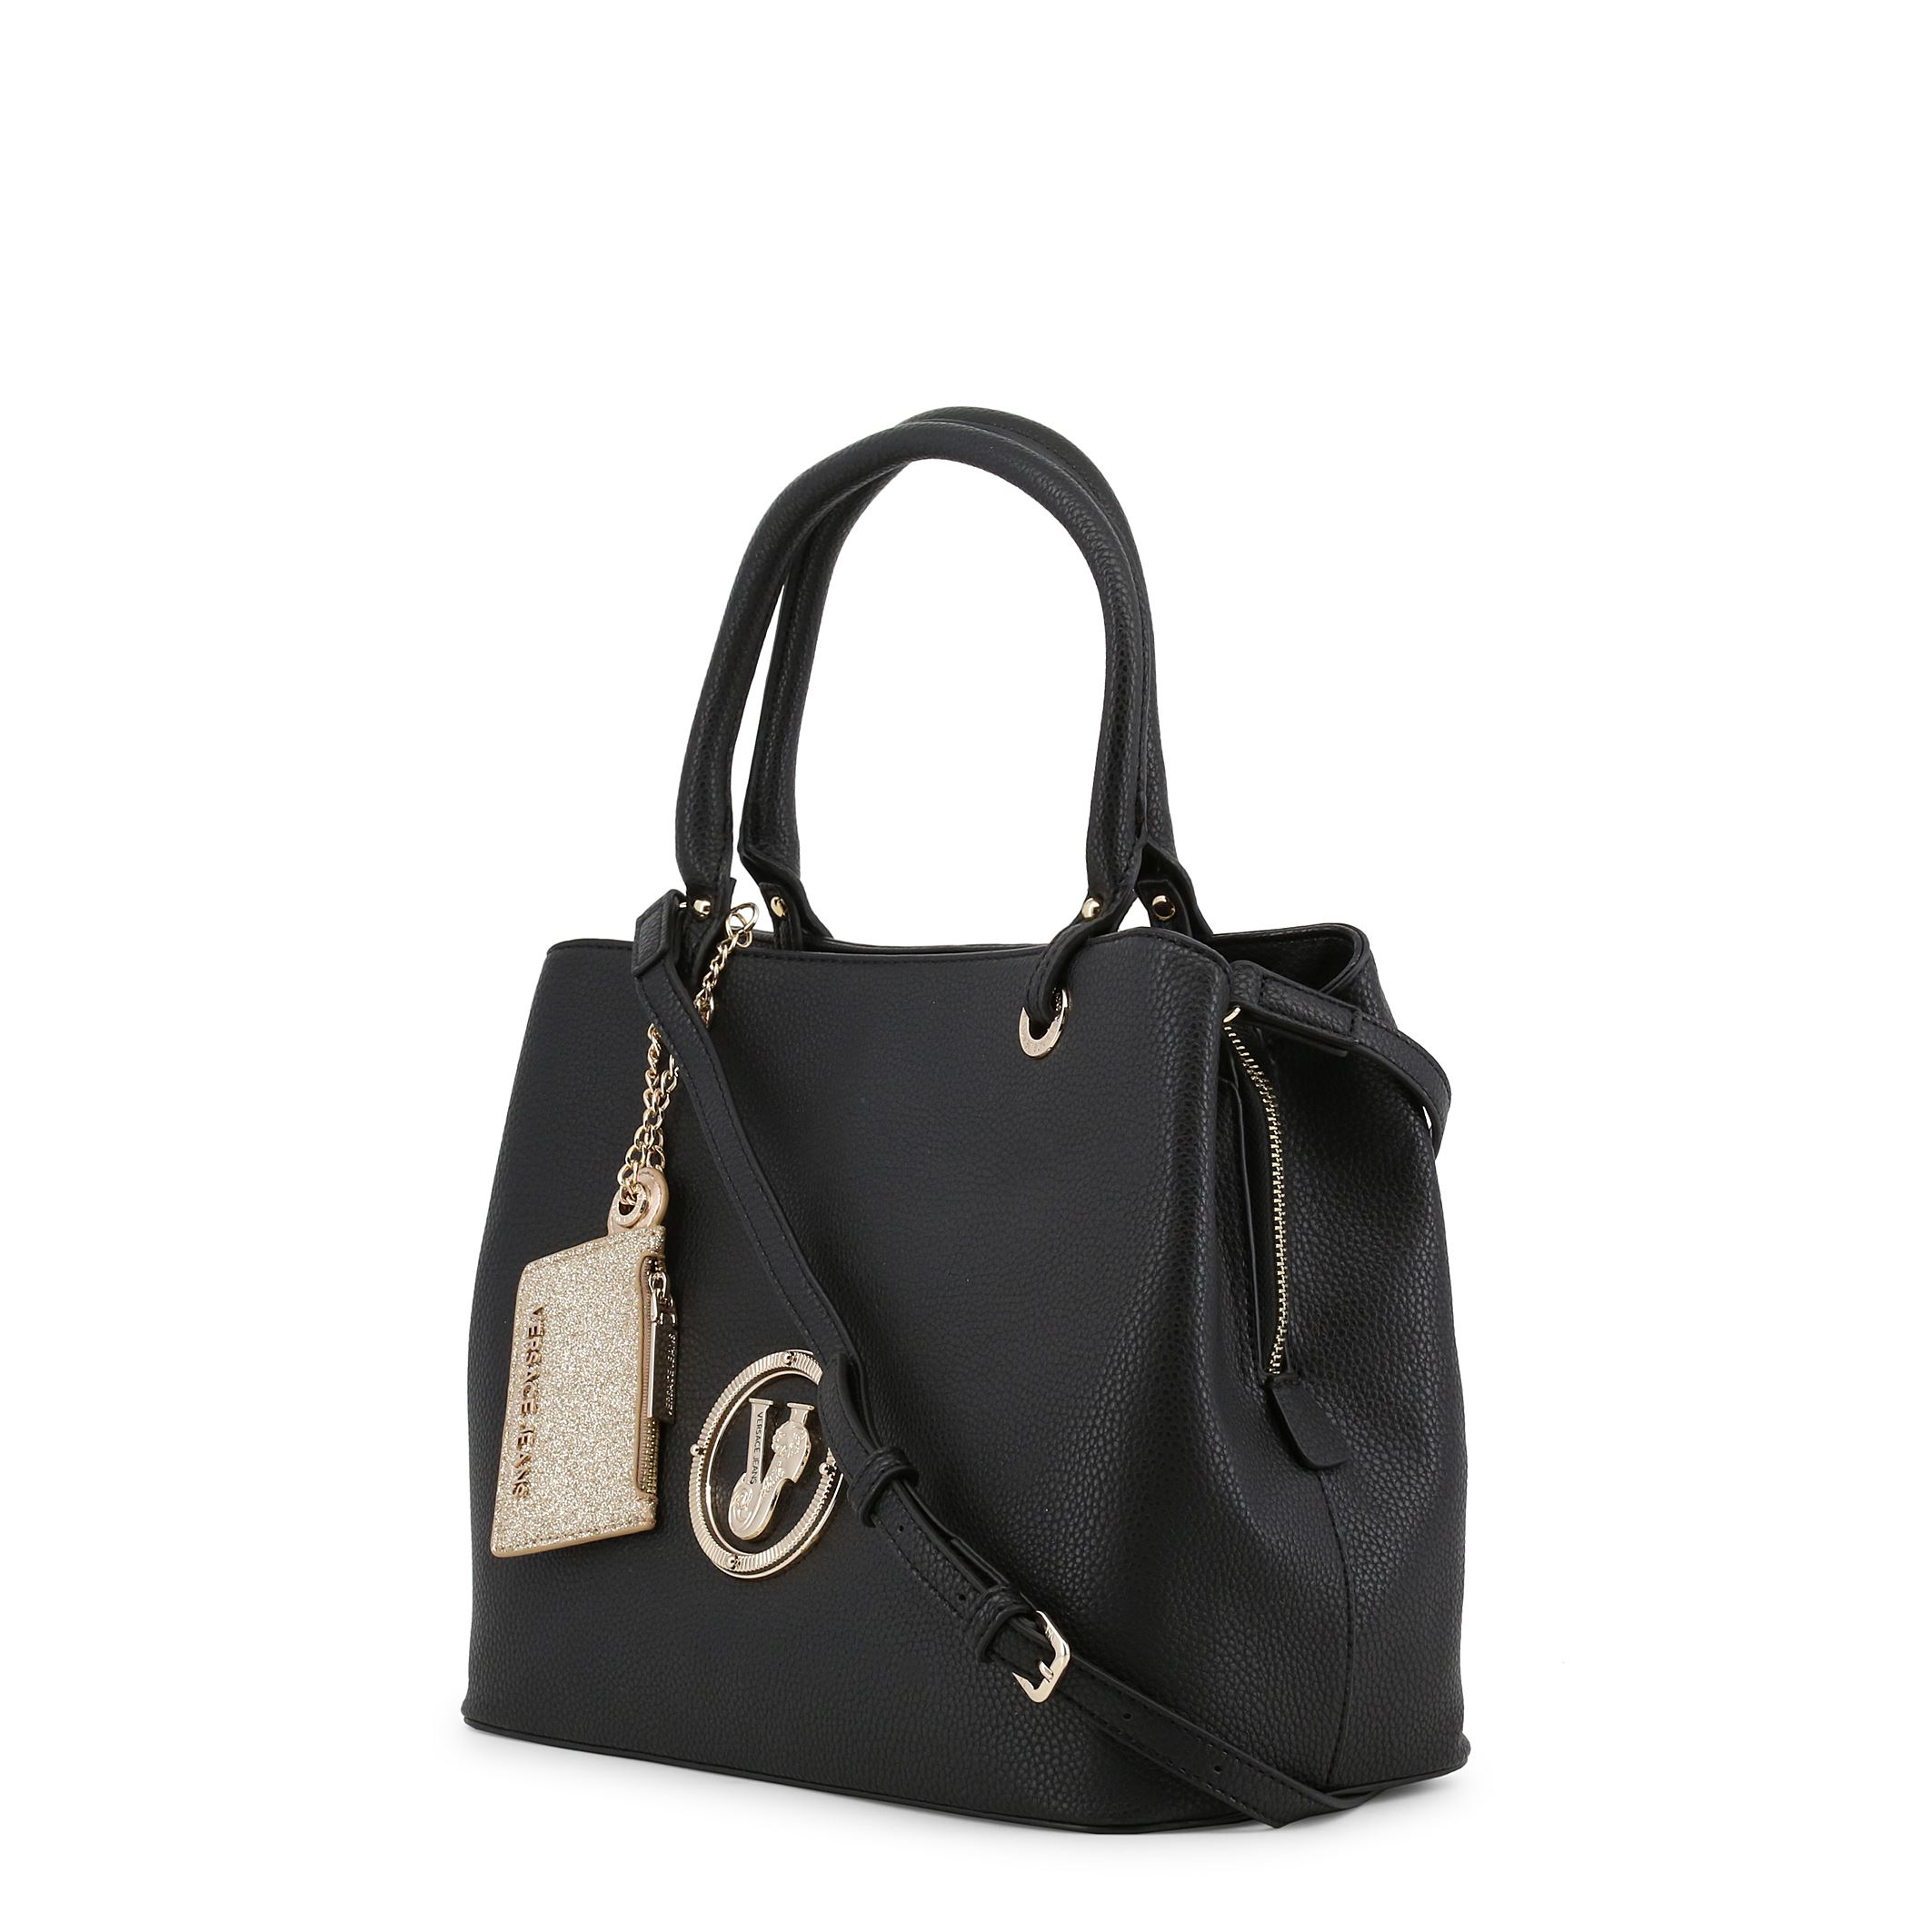 1eb6f936df48 Details about Versace Jeans Women s Leather Black Tote Shoulder Bag Zip  Fastening